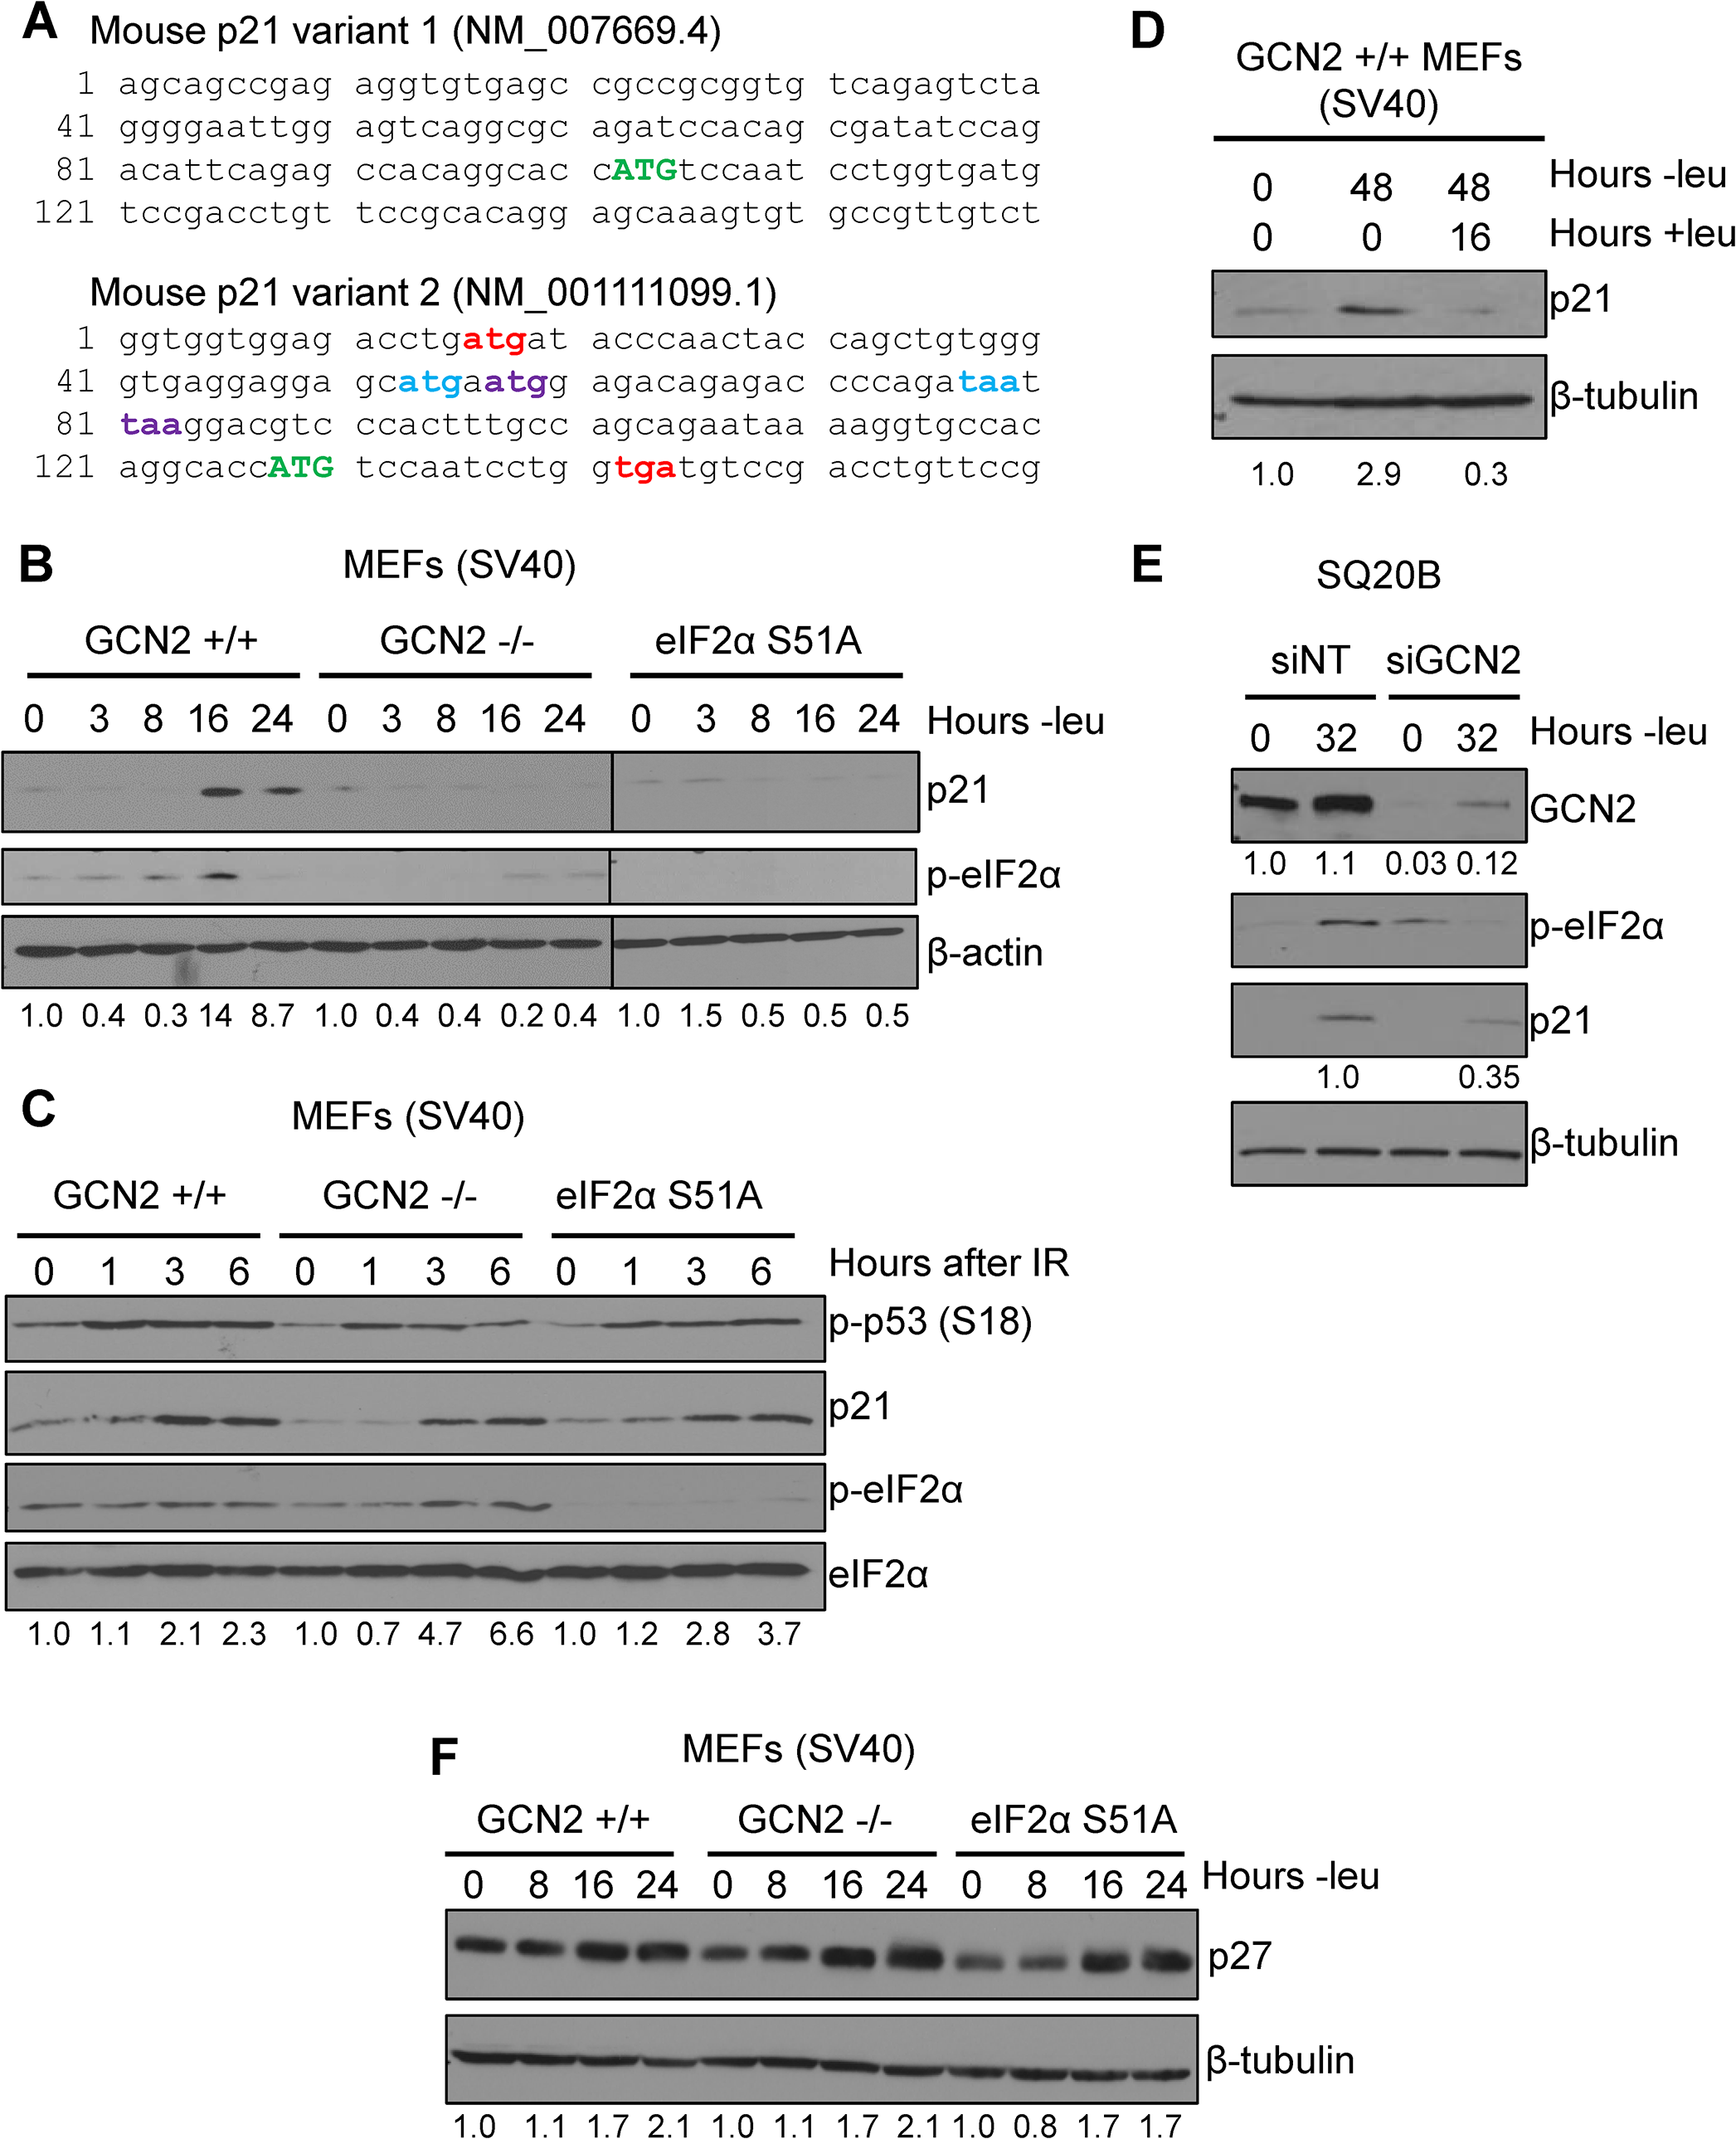 p21 induction under amino acid deprivation requires GCN2 and eIF2α phosphorylation.